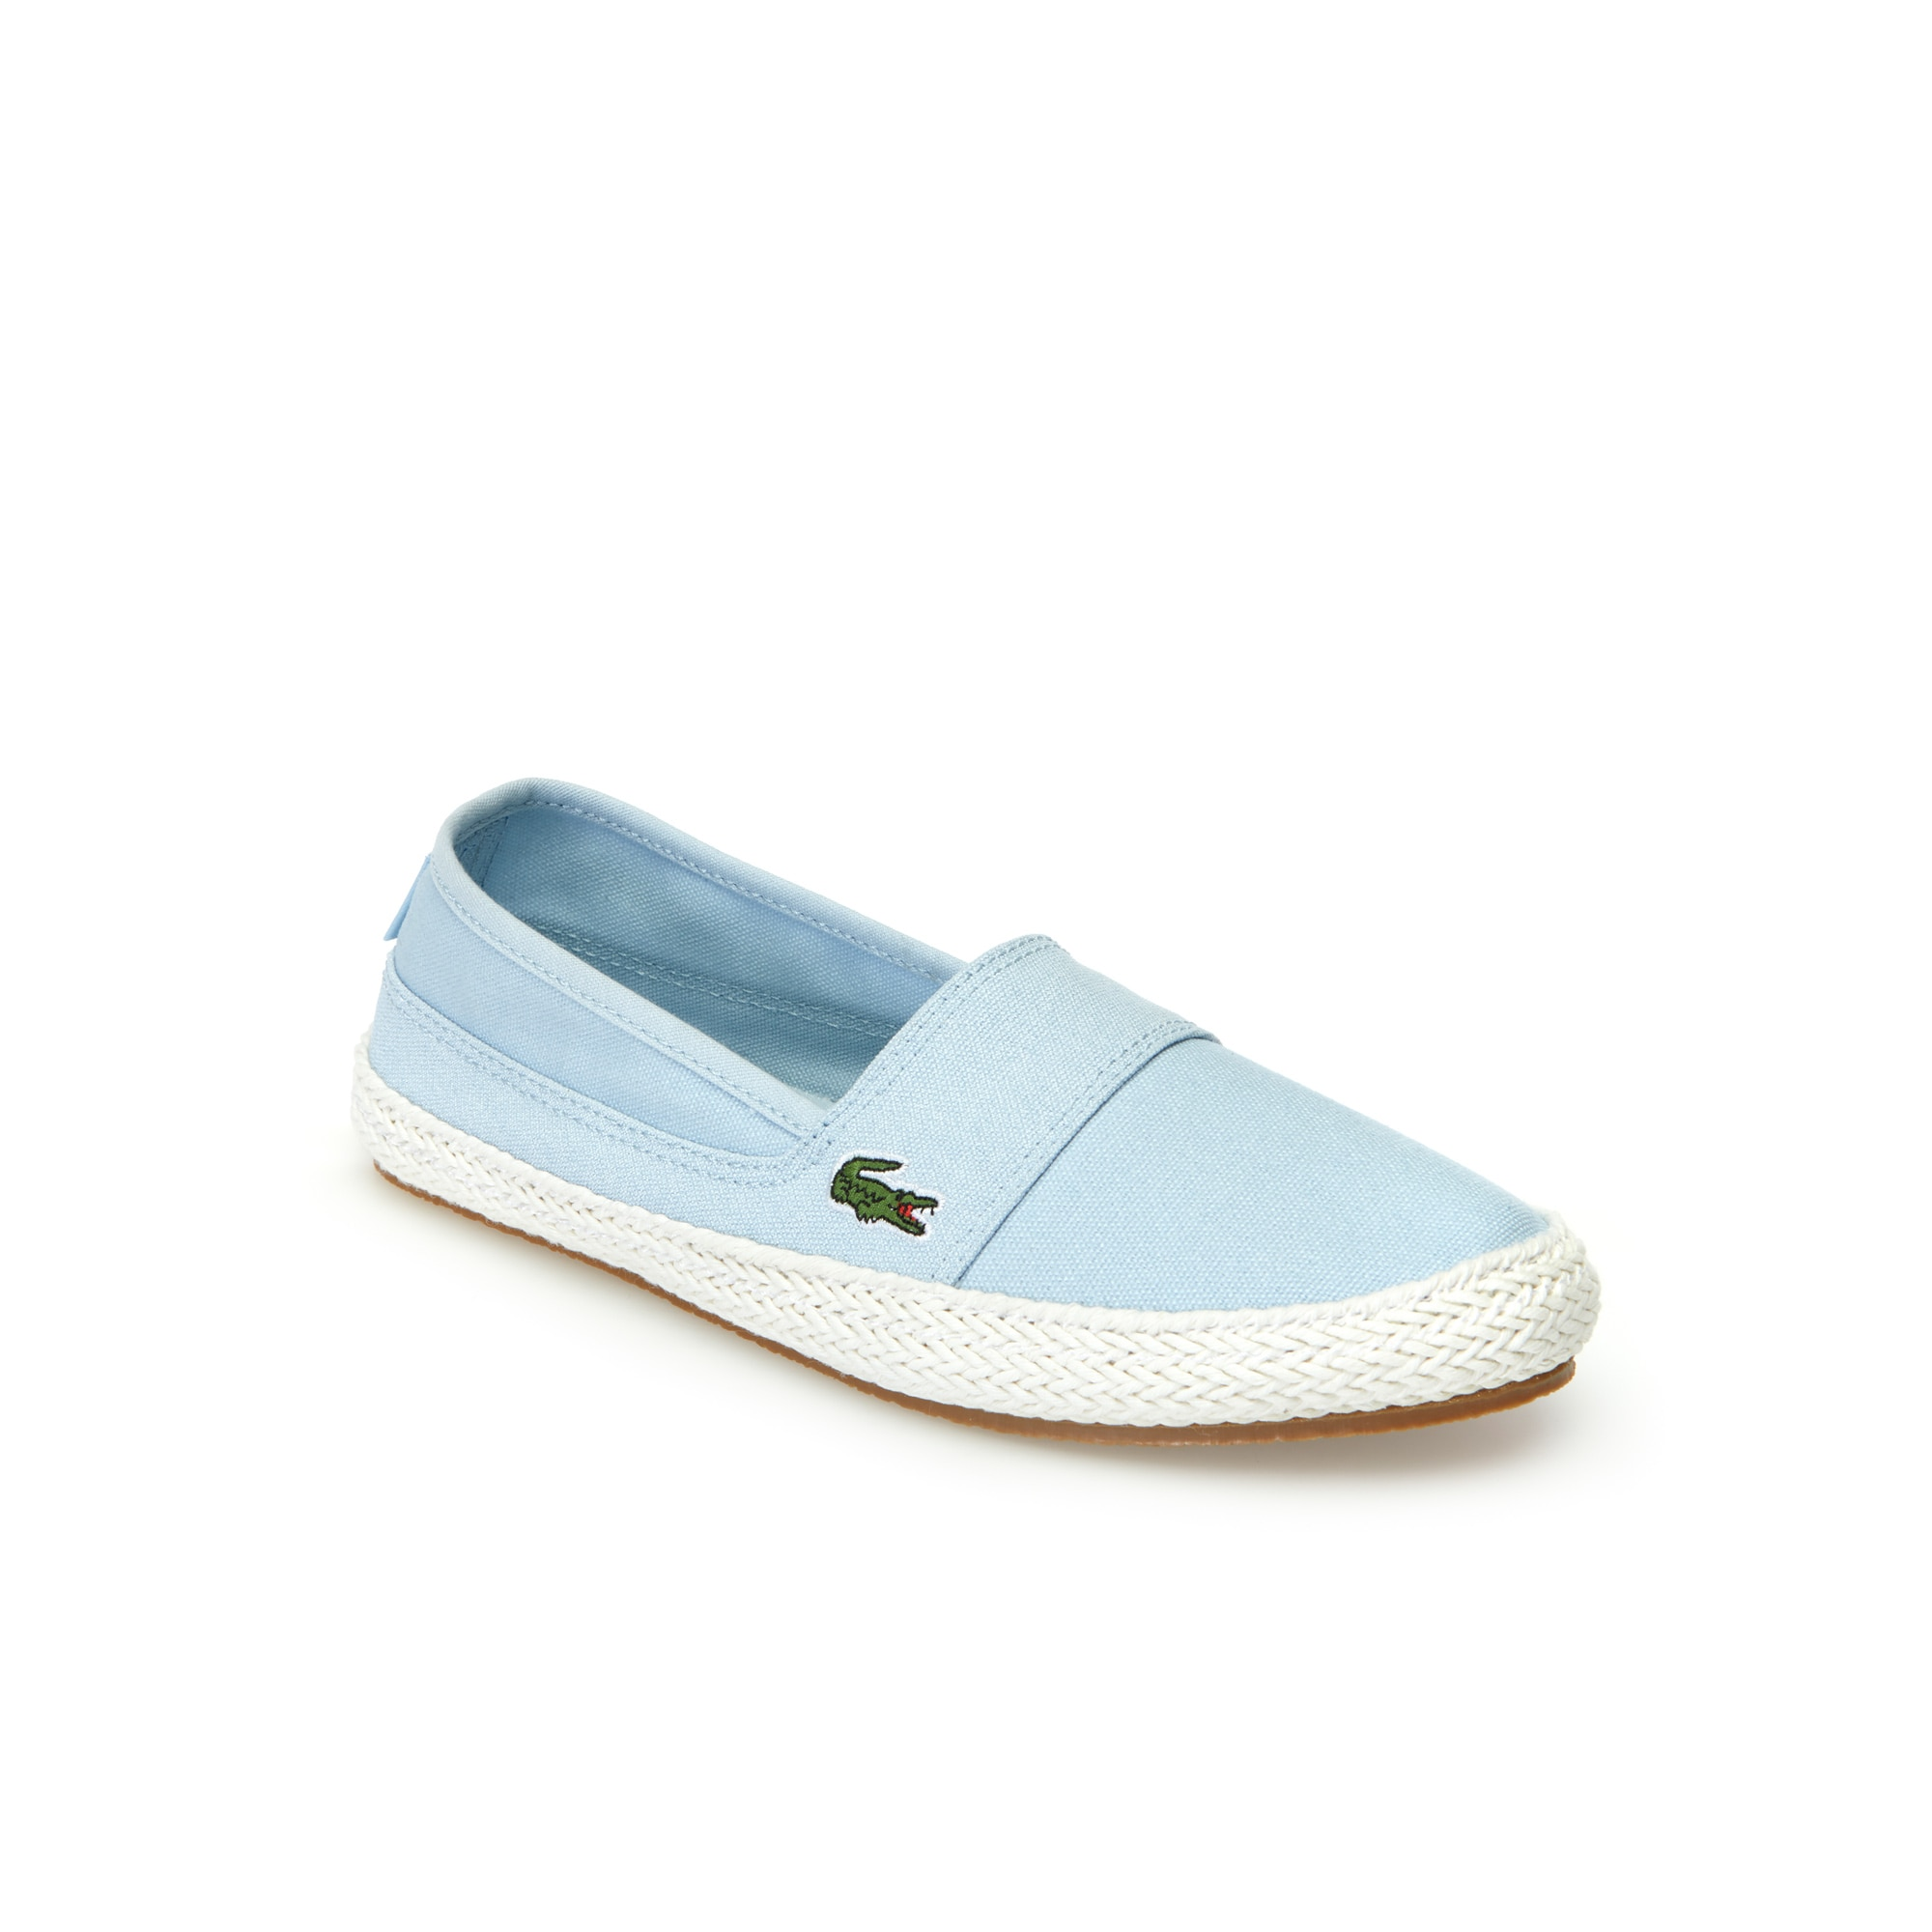 8f90b222081b1d ... new arrivals a5fae 407b9 Lacoste shoes - Shop online all Lacoste shoes  LACOSTE  differently 773d7 c16b3 Cheap Fashion Men ...